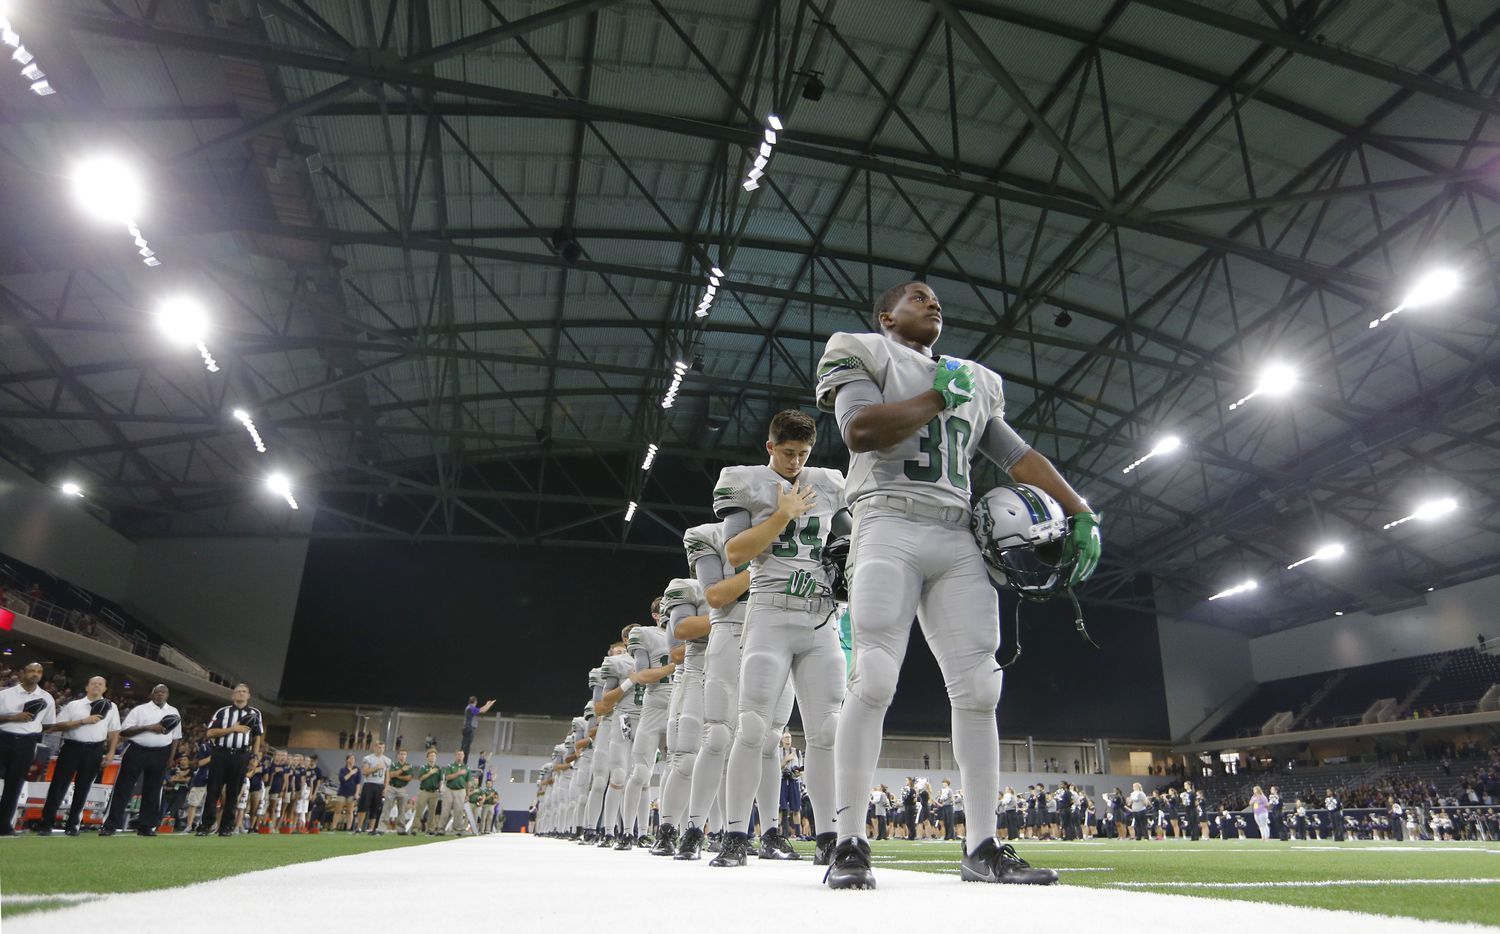 Reedy's Justin Gipson (30) and team during the playing of the National Anthem before playing against Independence High School in the first high school football game at The Star in Frisco on Saturday, August 27, 2016. (Vernon Bryant/The Dallas Morning News)